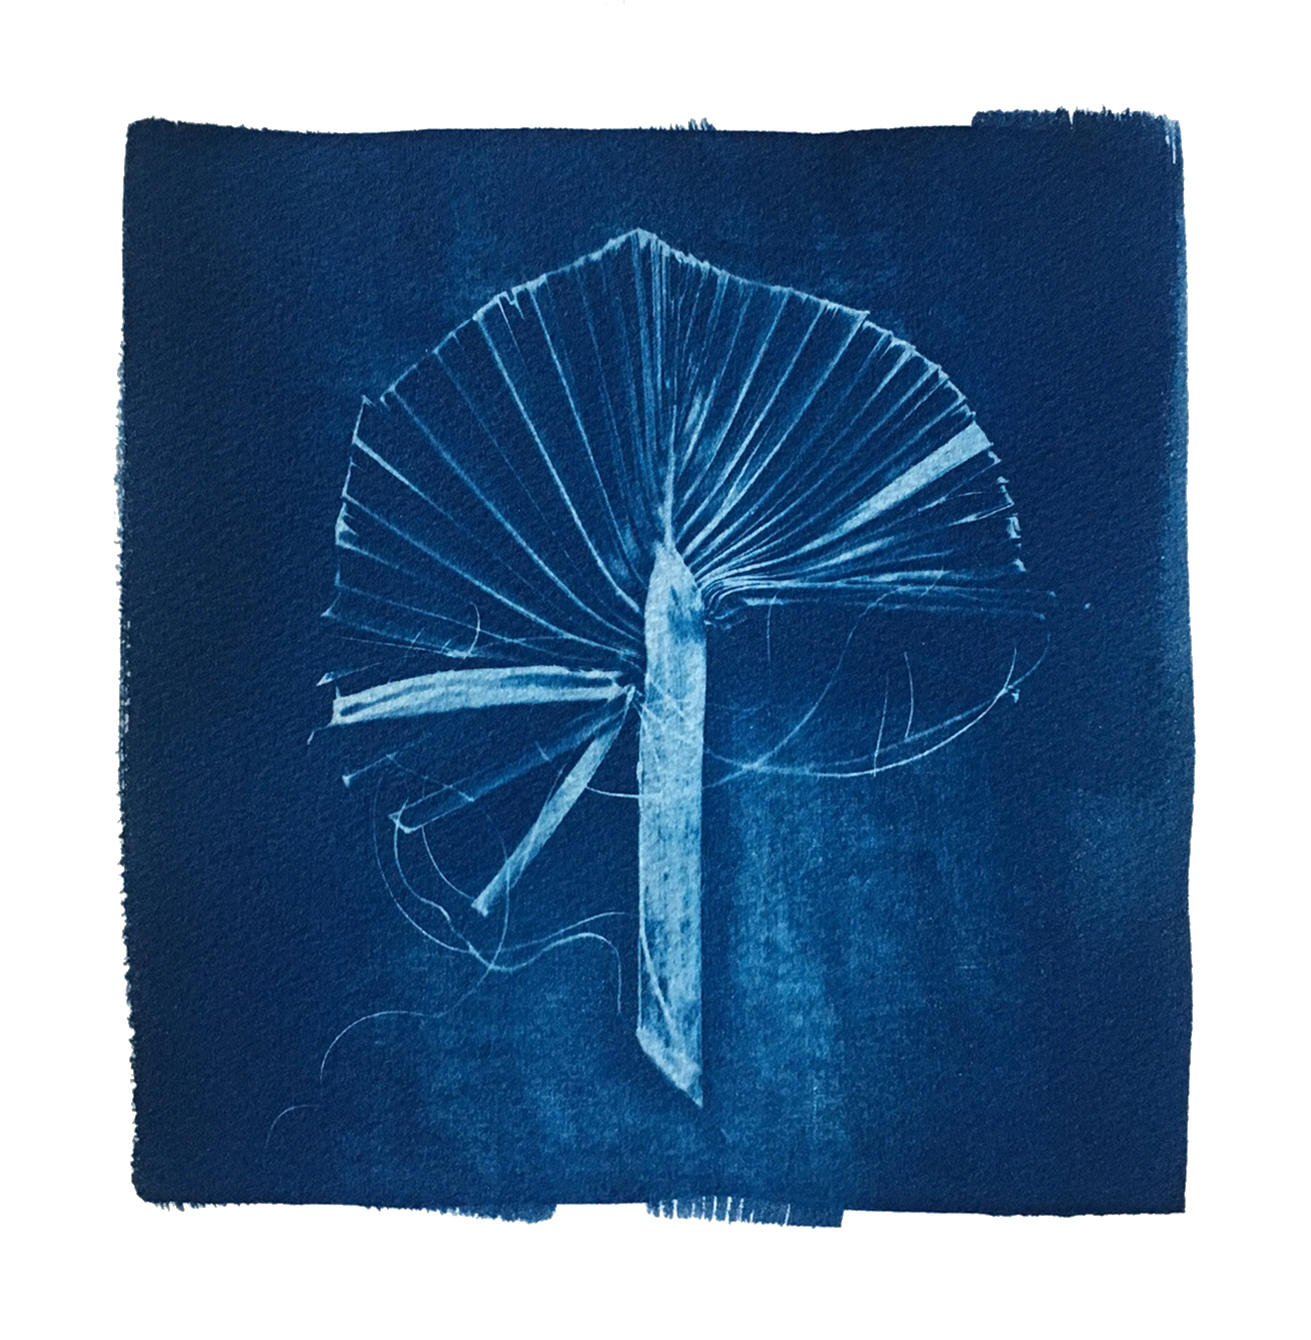 "TITLE /  Sabal Minor Fan  MEDIUM /  Cyanotype Print, Printed on 100% Cotton Paper  SIZE /  9"" x 9""  PRICE /  SOLD"